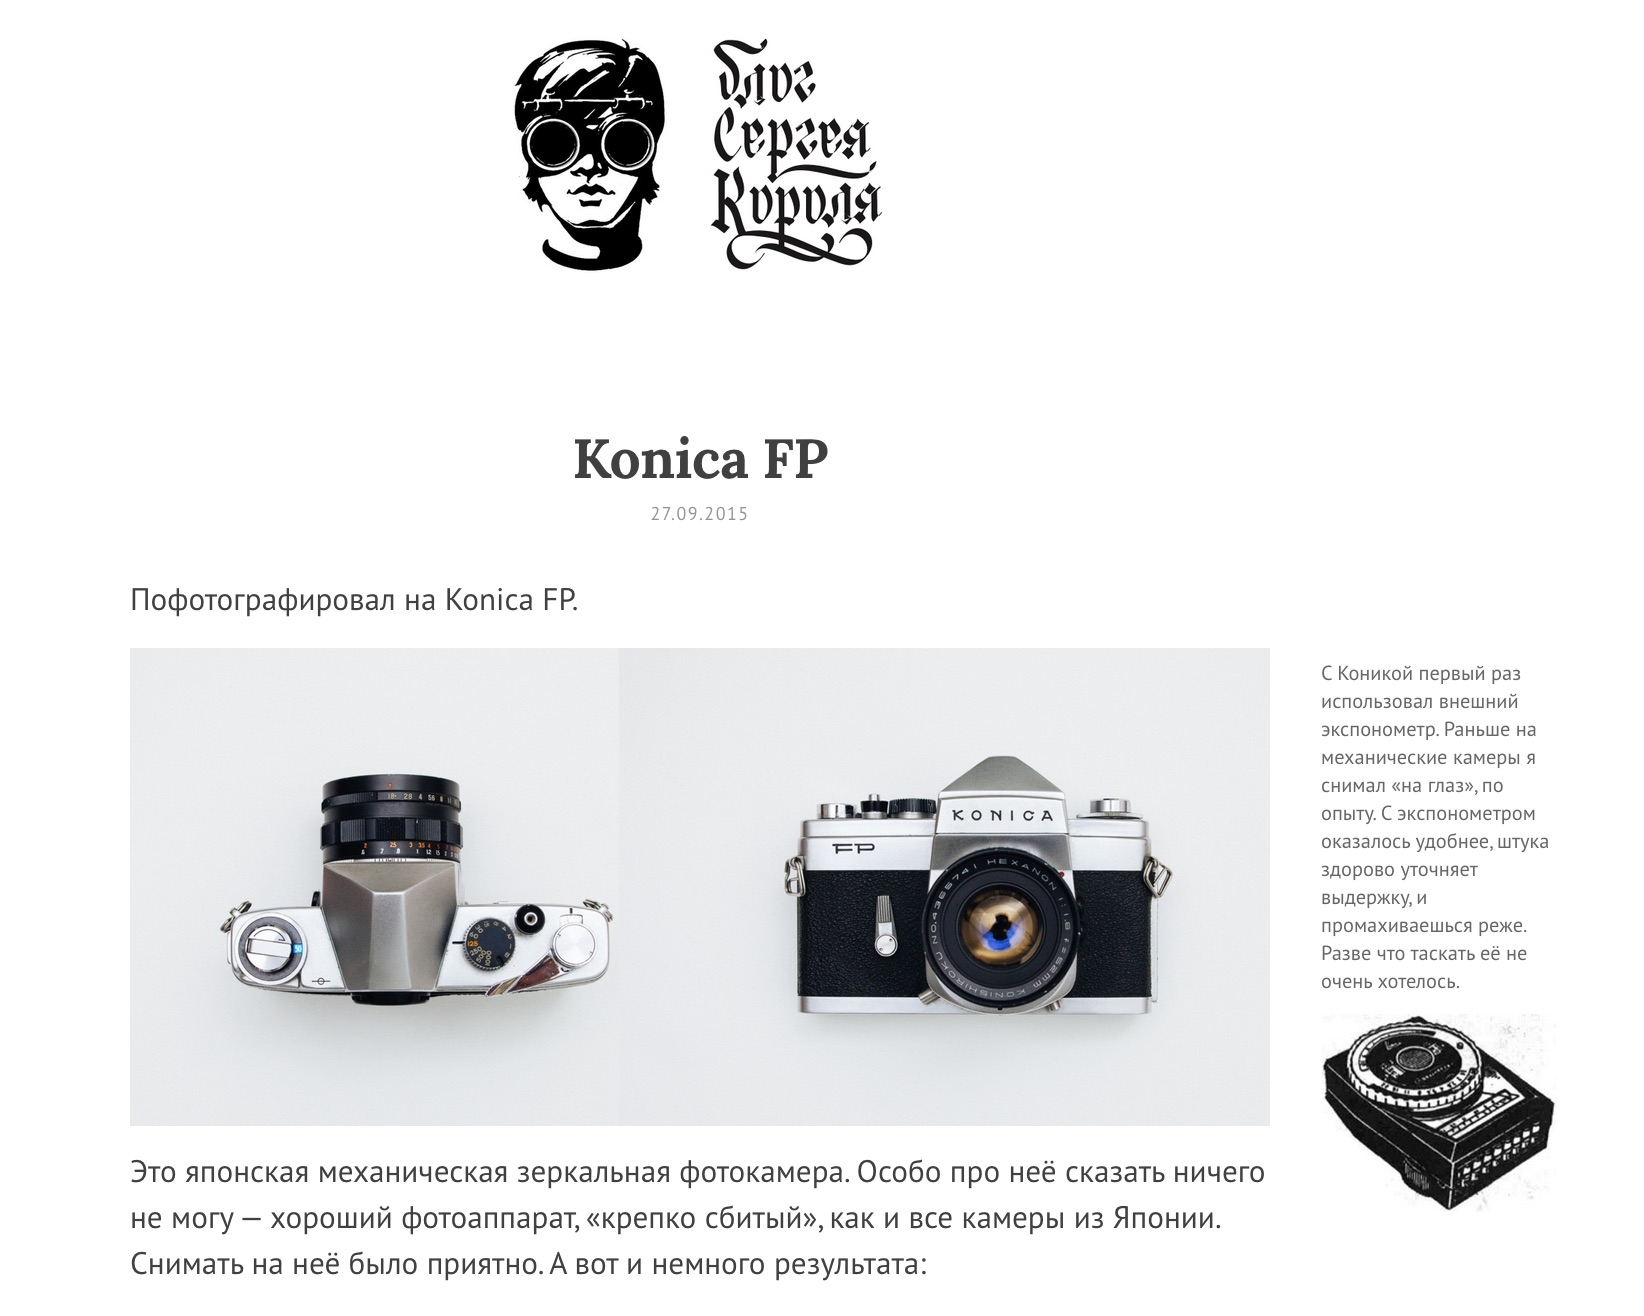 Blog post about Konica FP vintage photo camera